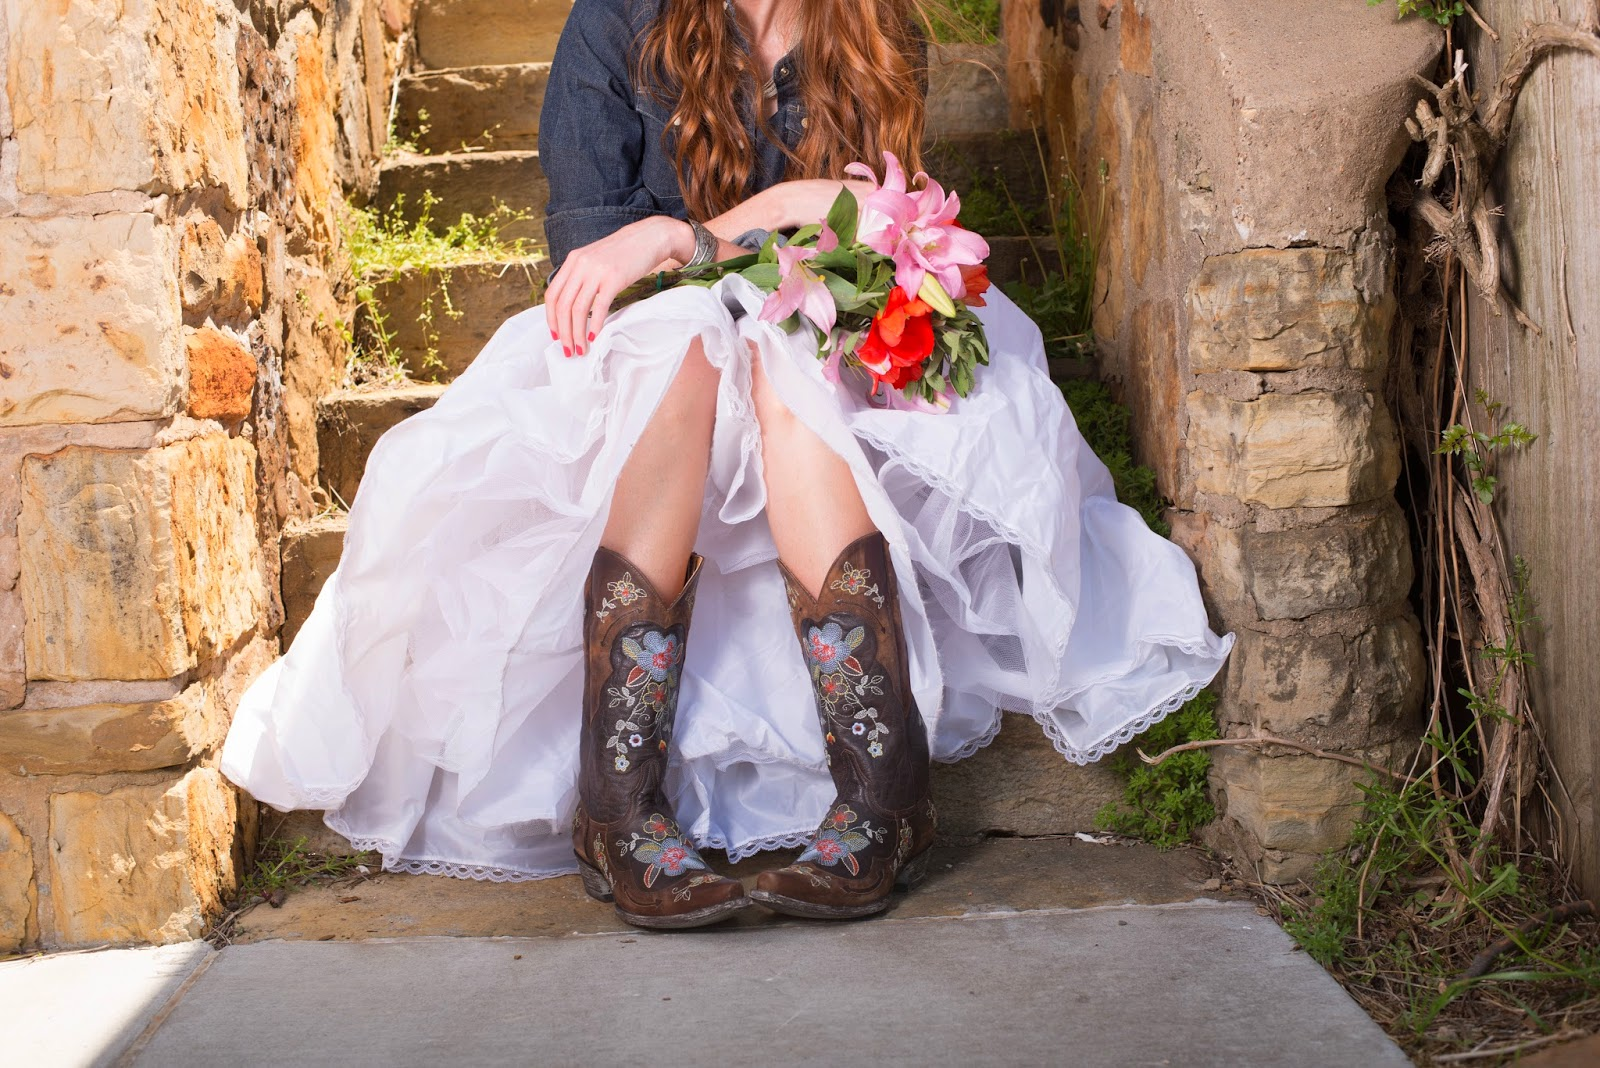 Fashion lessons from my childhood wearing boots with for Simple southern wedding dresses